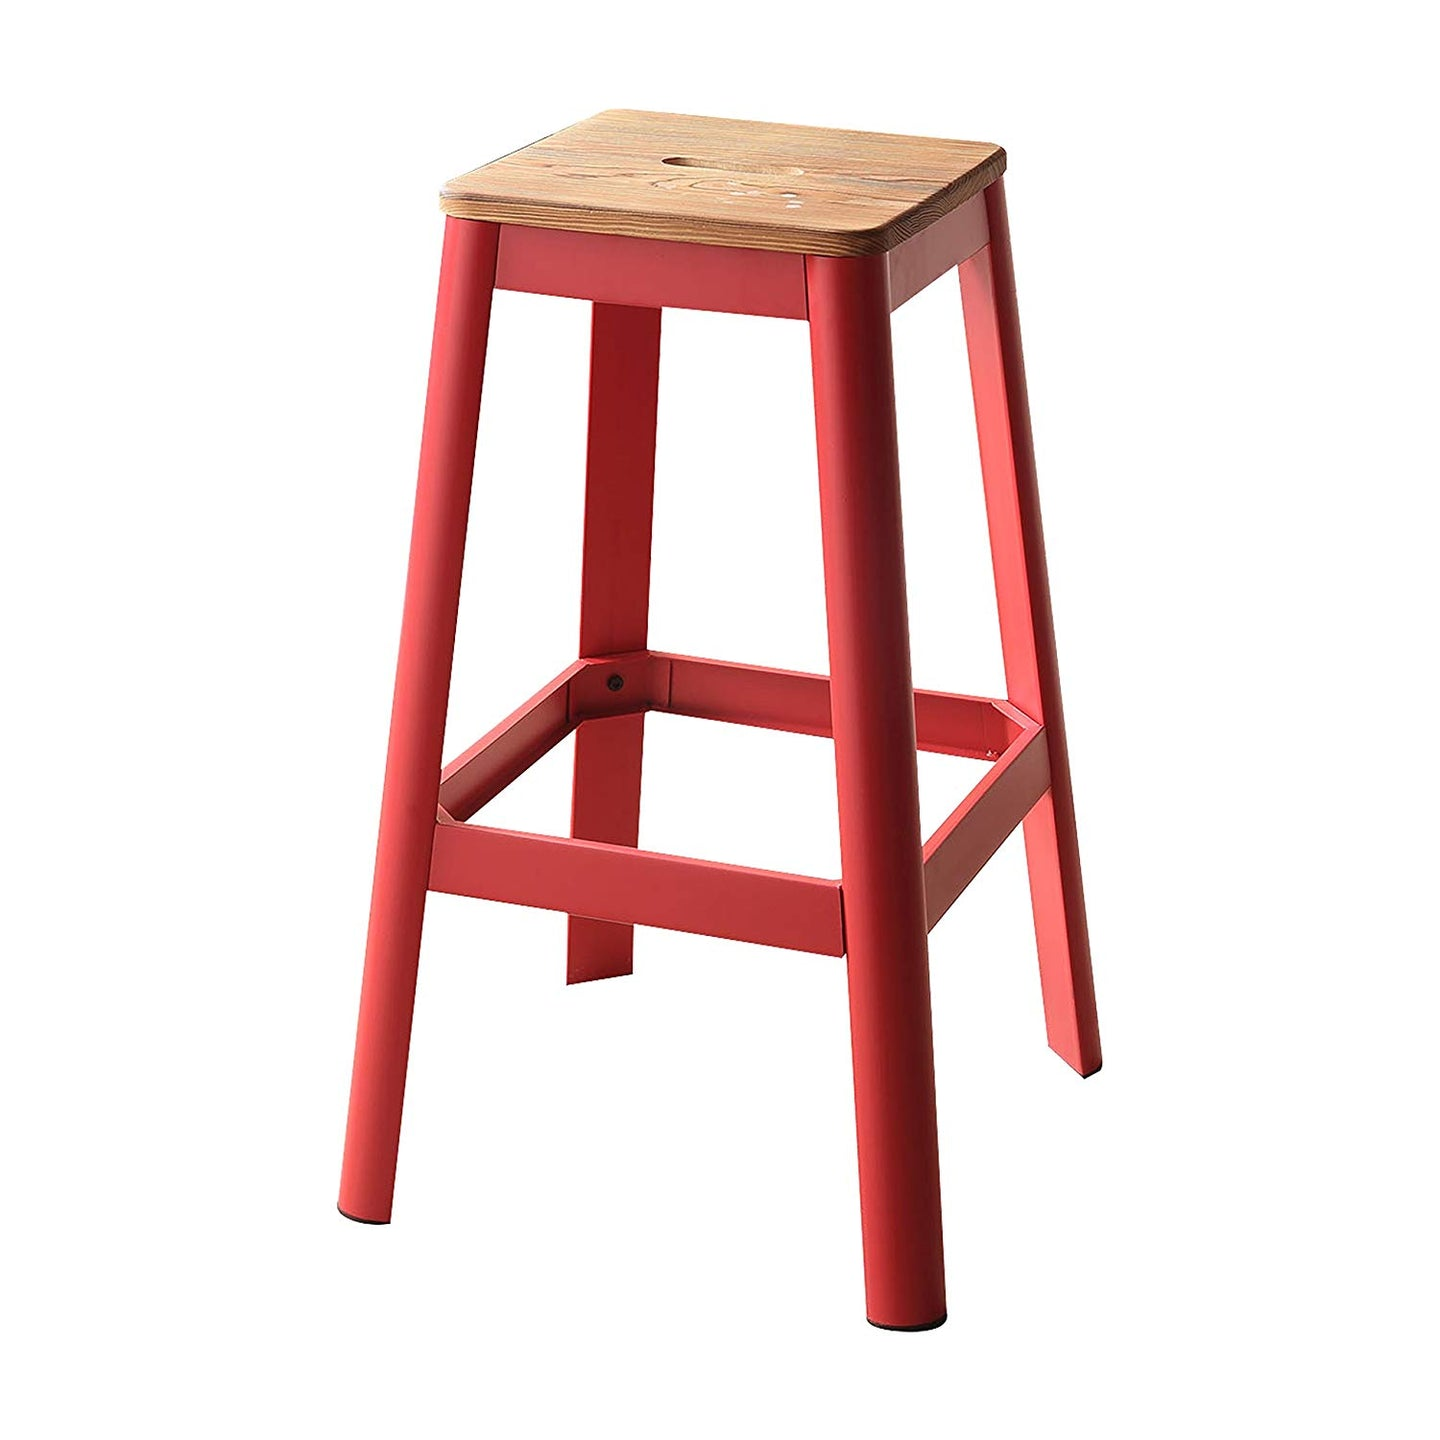 Acme Jacotte Red Wood And Metal Finish 2 Piece Bar Stool